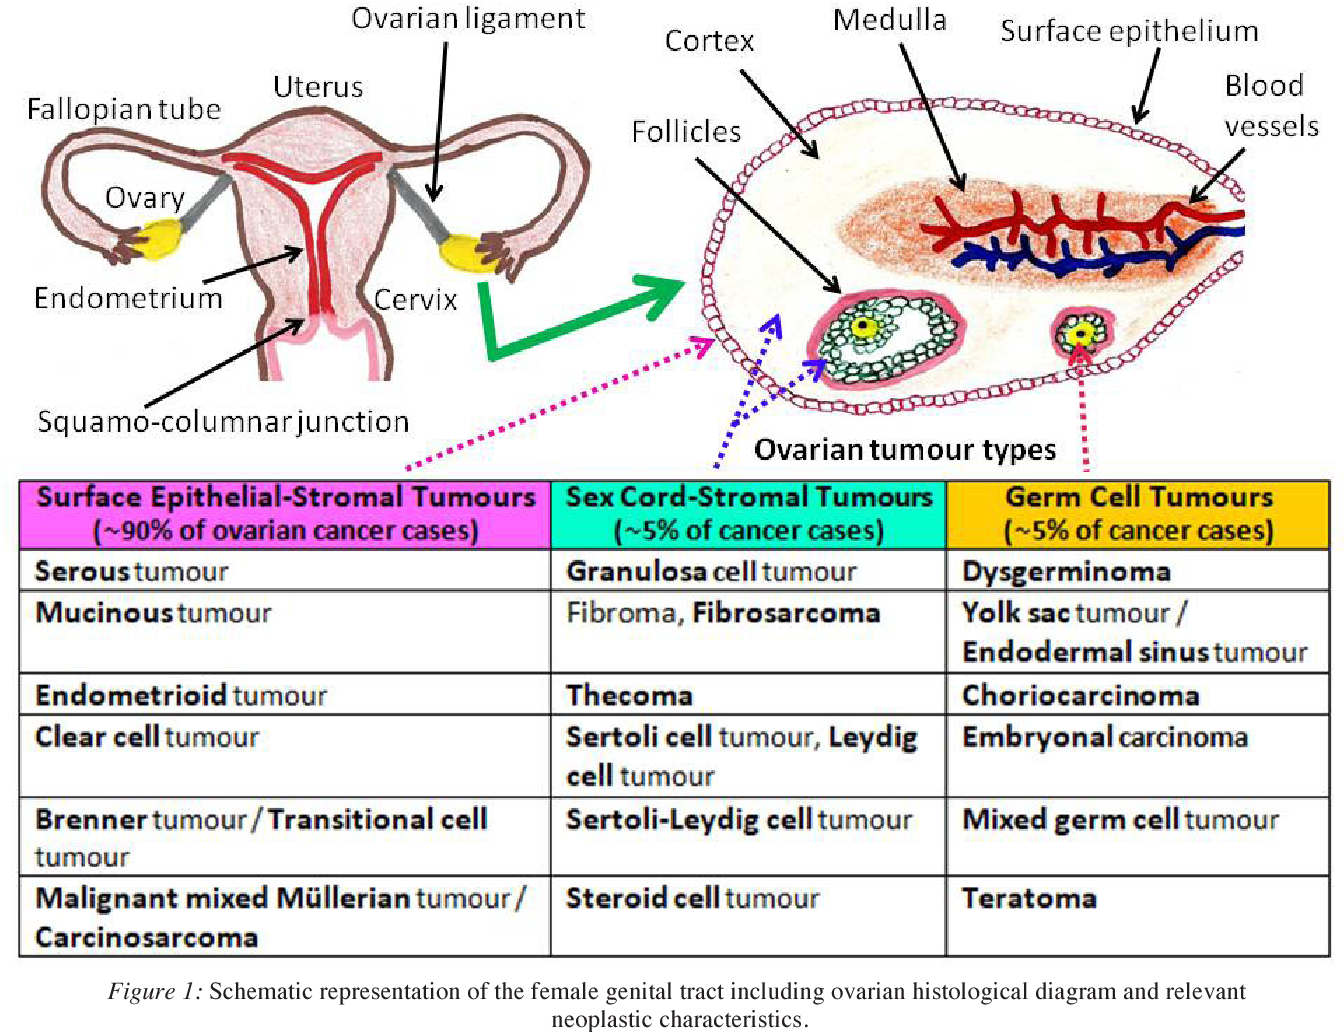 Pdf Gynaecological Cancers And Leptin A Focus On The Endometrium And Ovary Semantic Scholar